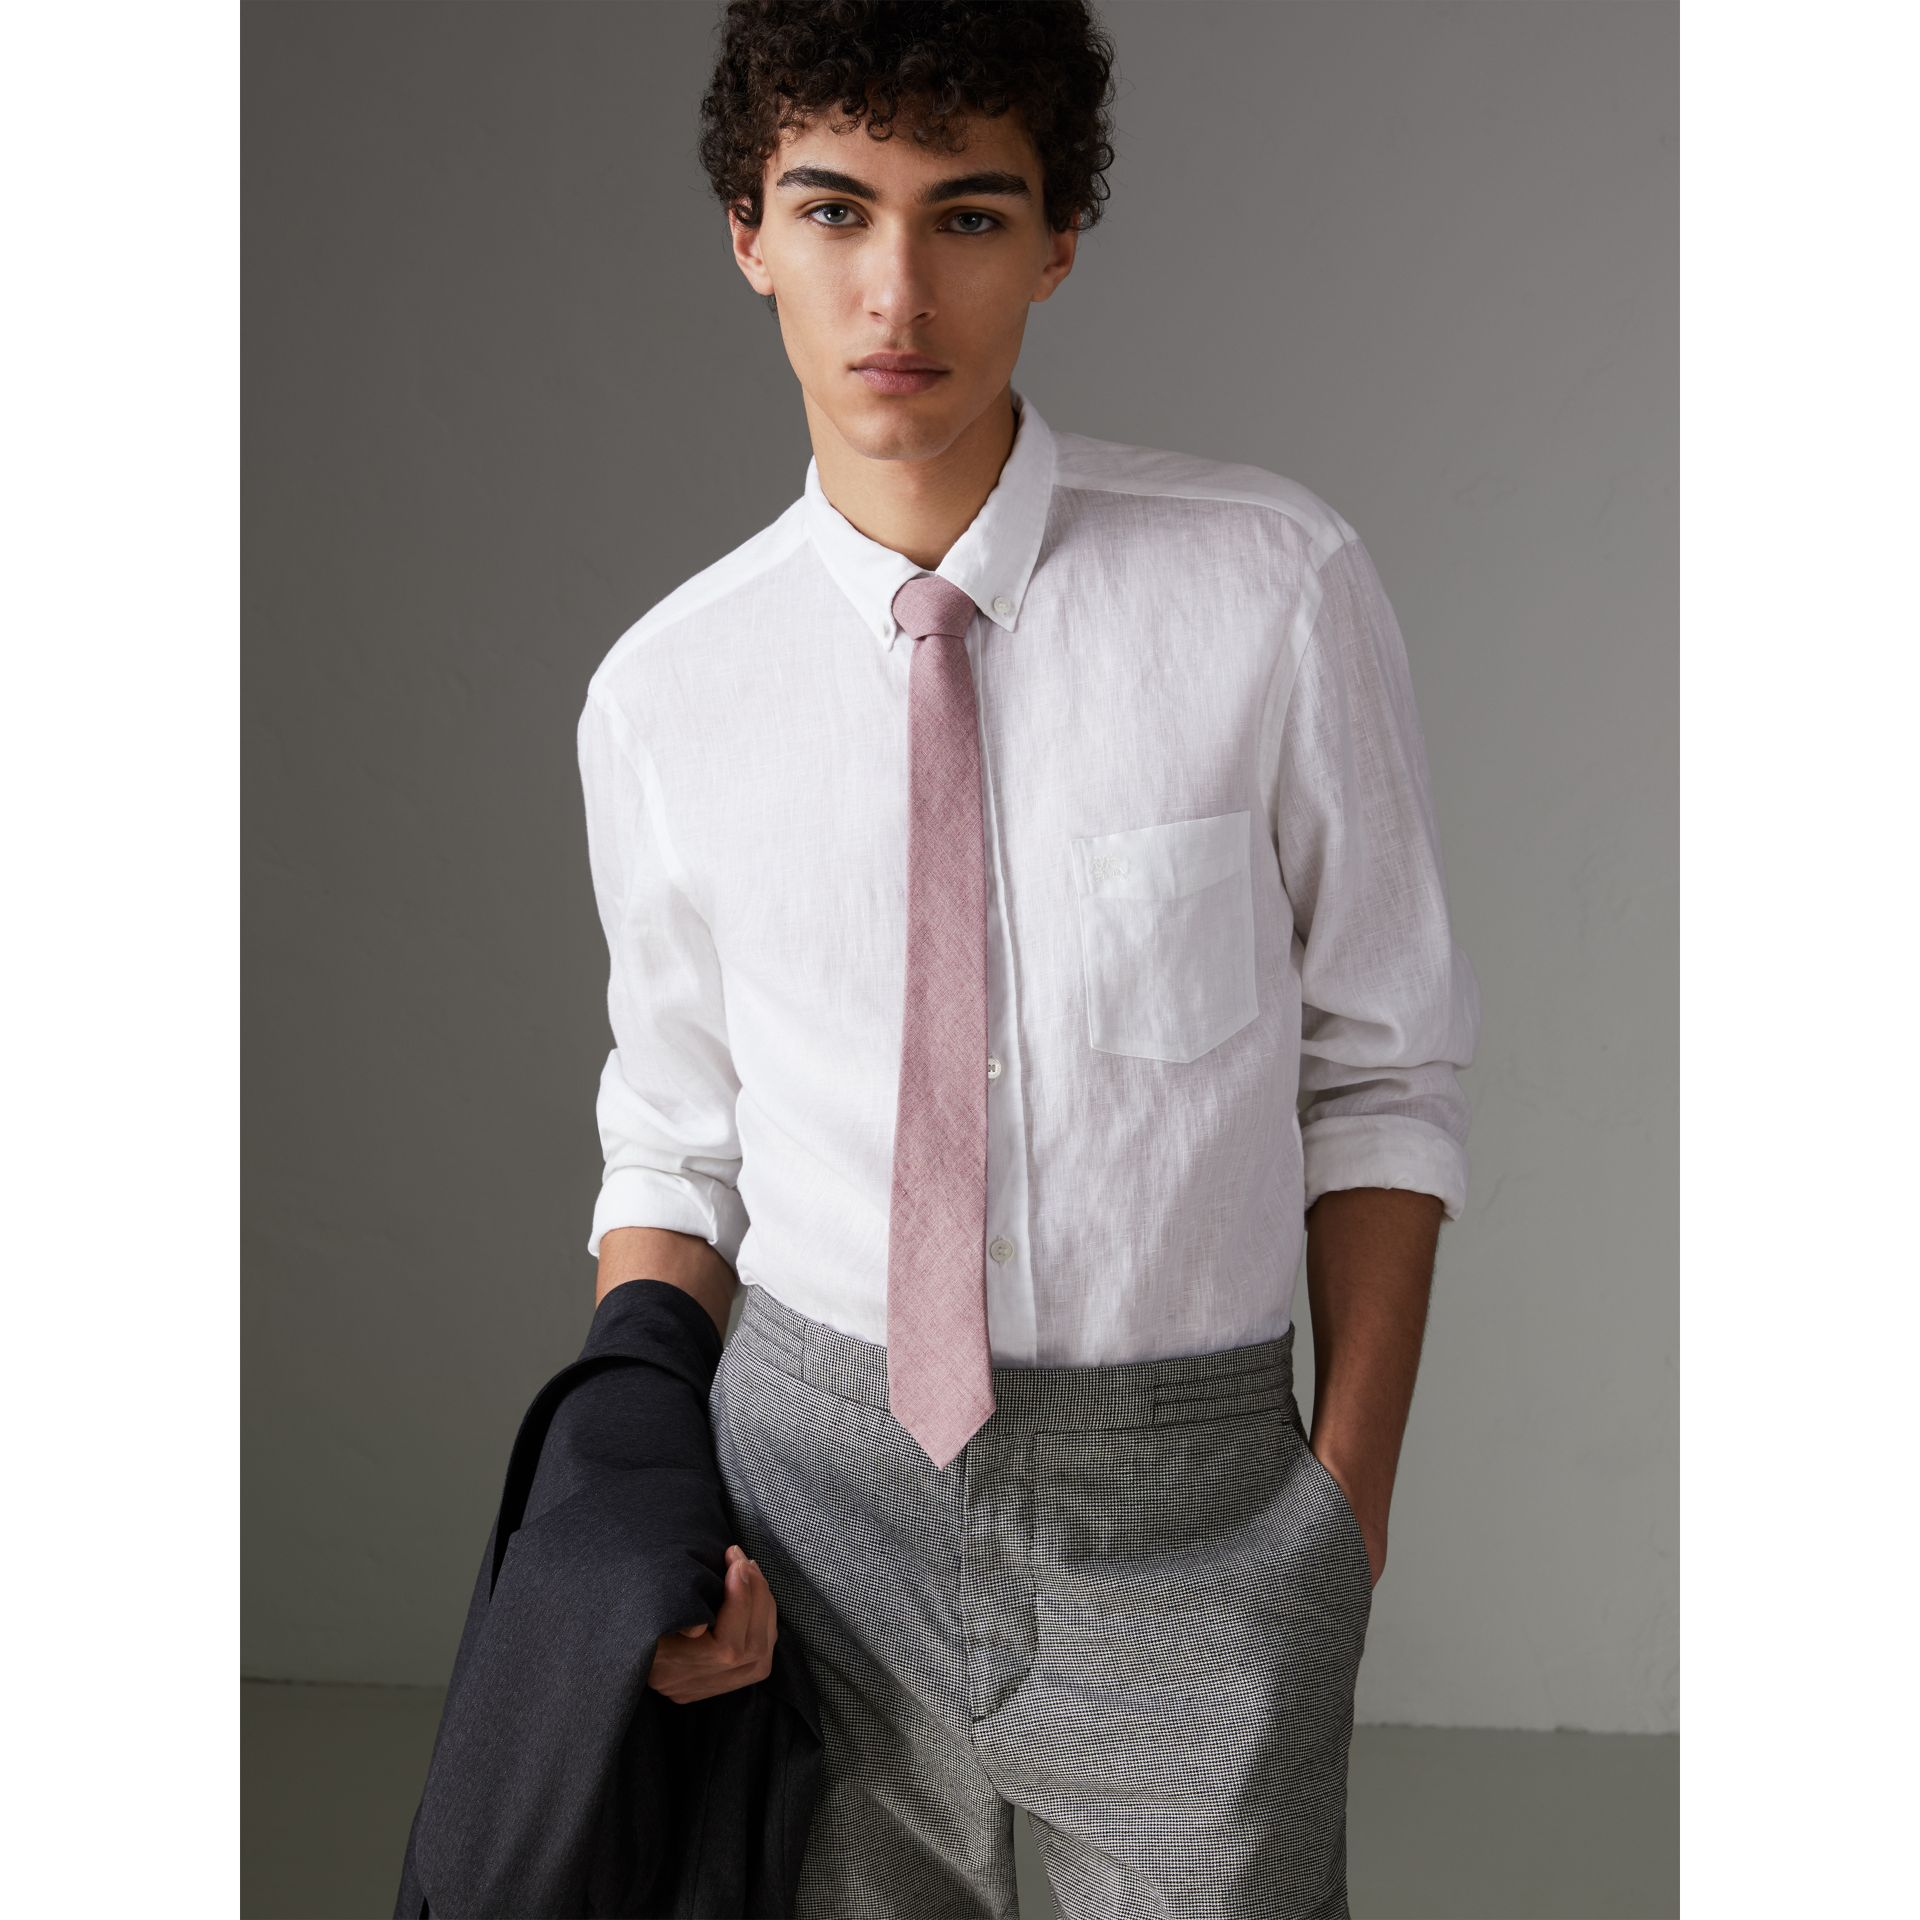 Slim Cut Linen Tie in Pink Heather - Men | Burberry United States - gallery image 2